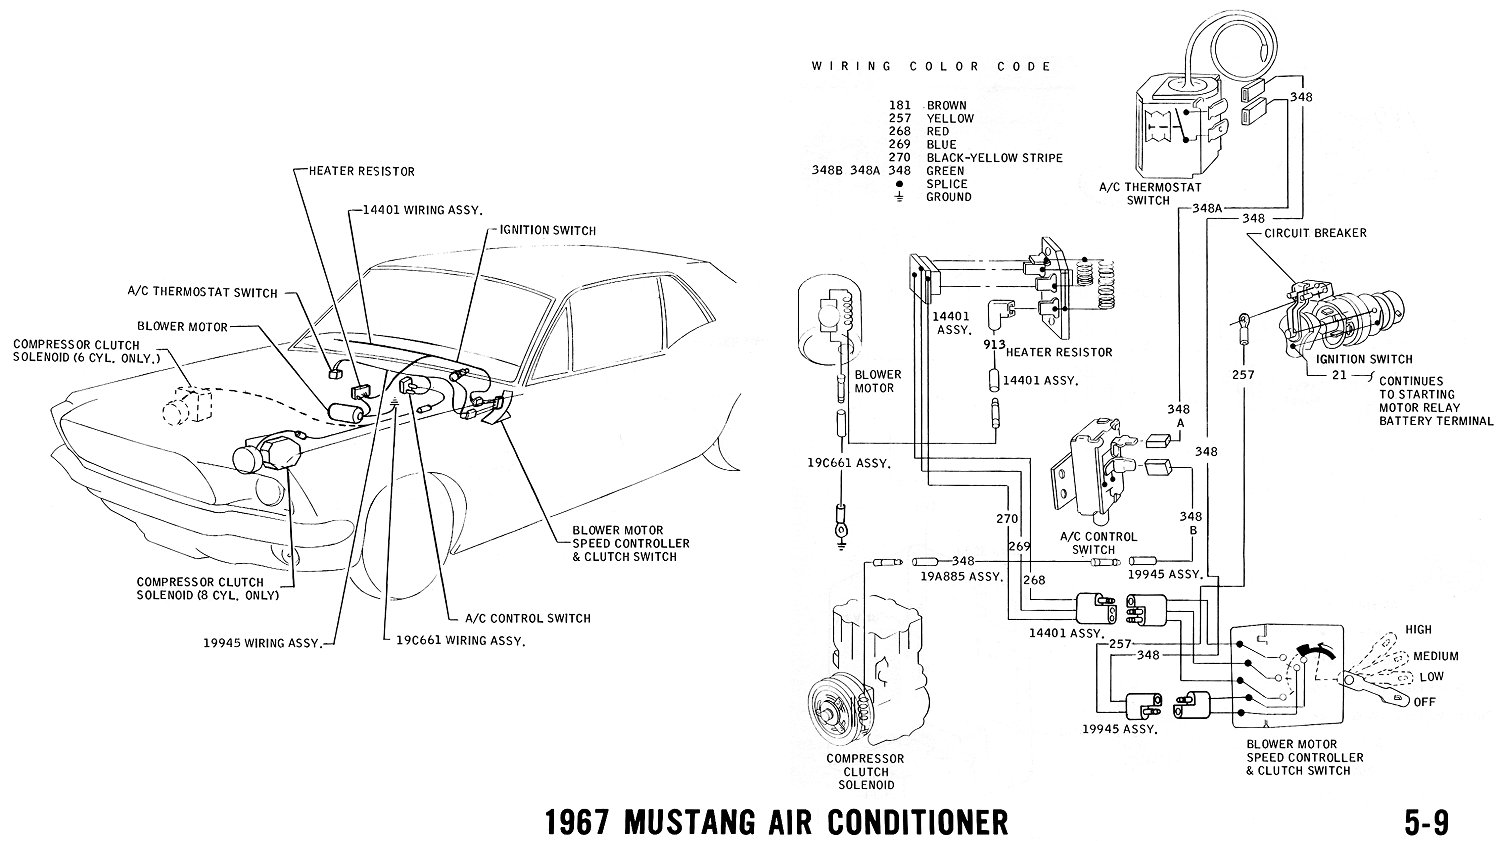 67 mustang turn signal wiring diagram list of wiring diagrams 68 cougar turn signal switch wiring